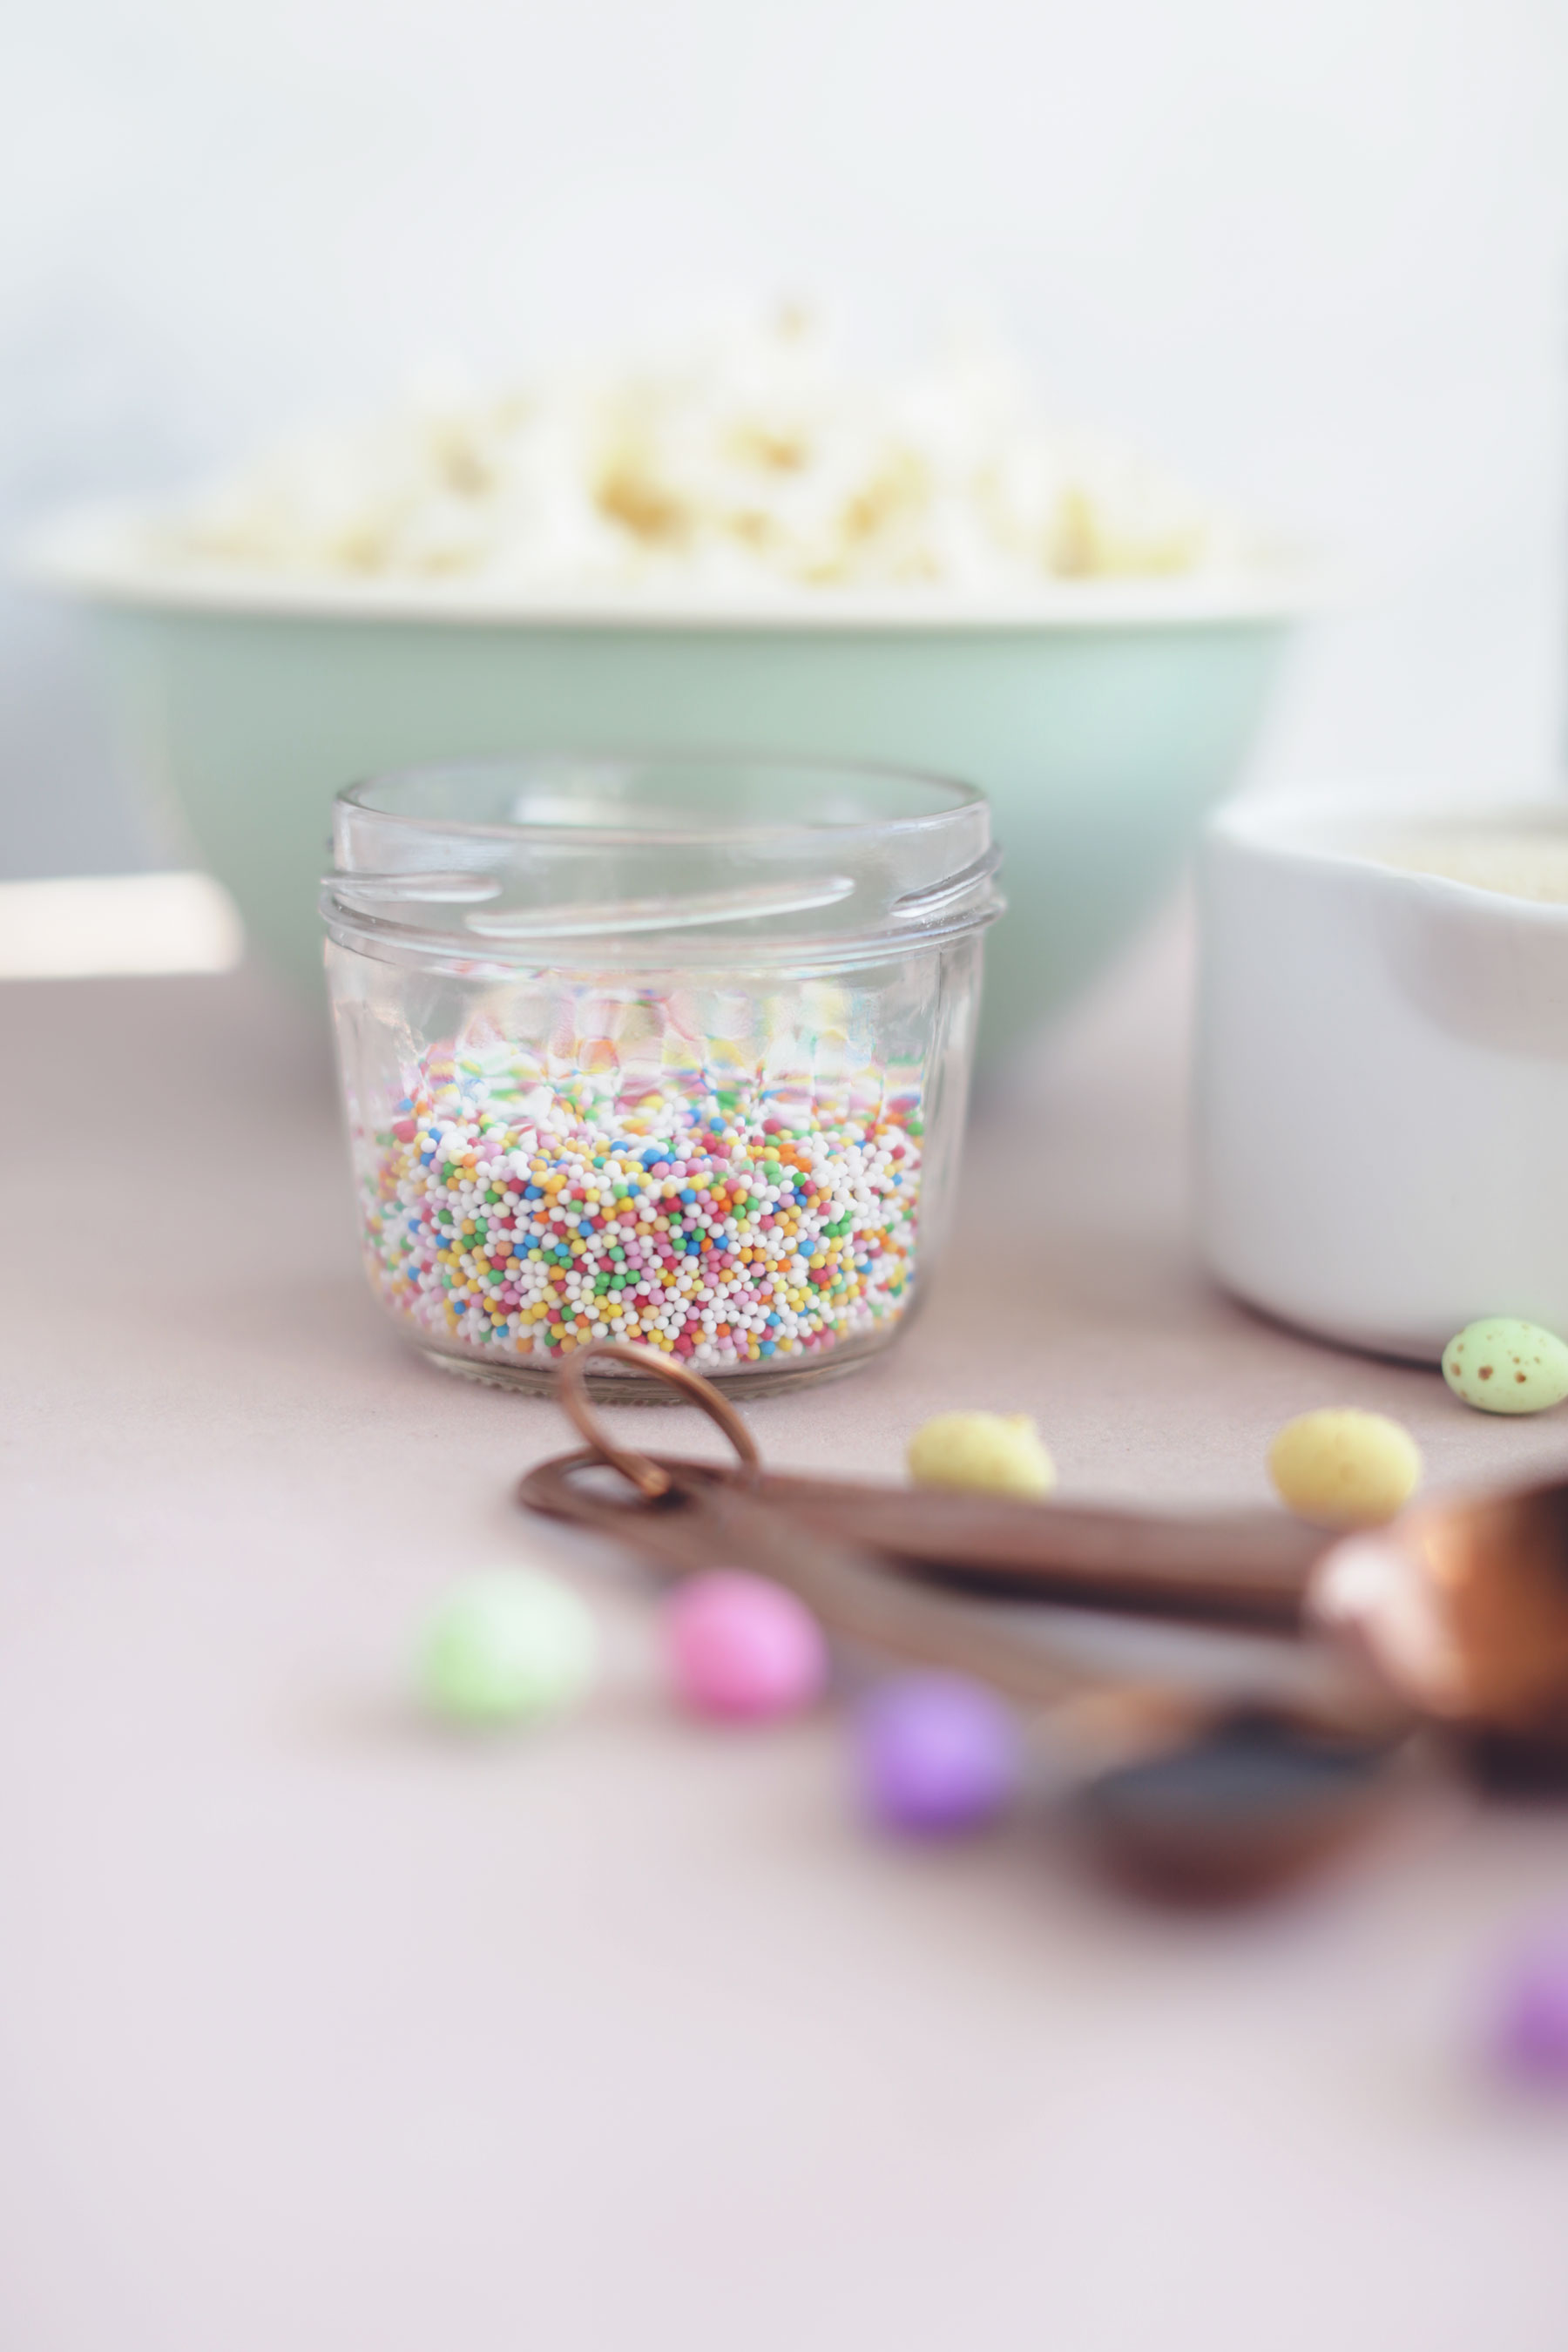 Caramel-Popcorn-with-speckled-eggs-and-sprinkles-3